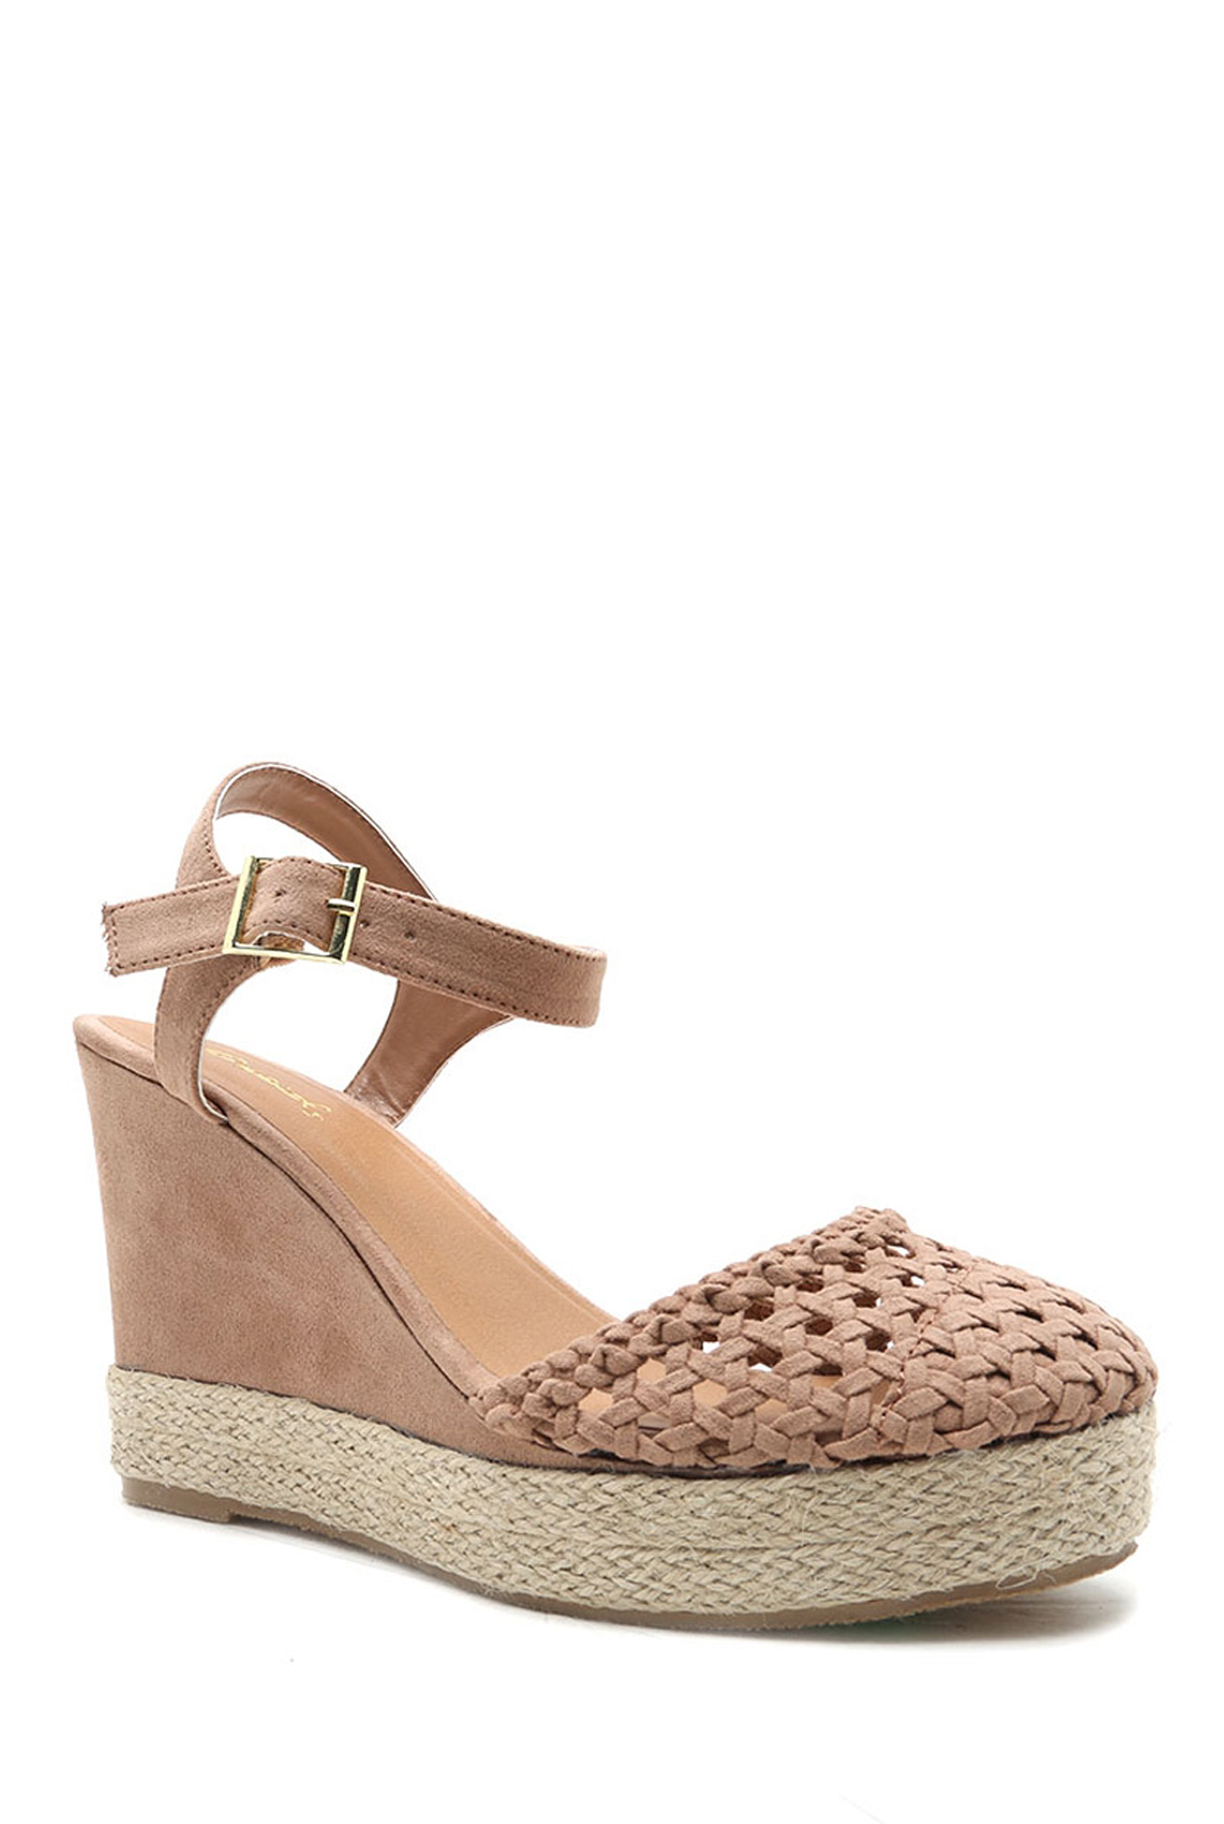 'FIONA' Espadrille Wedge - Taupe